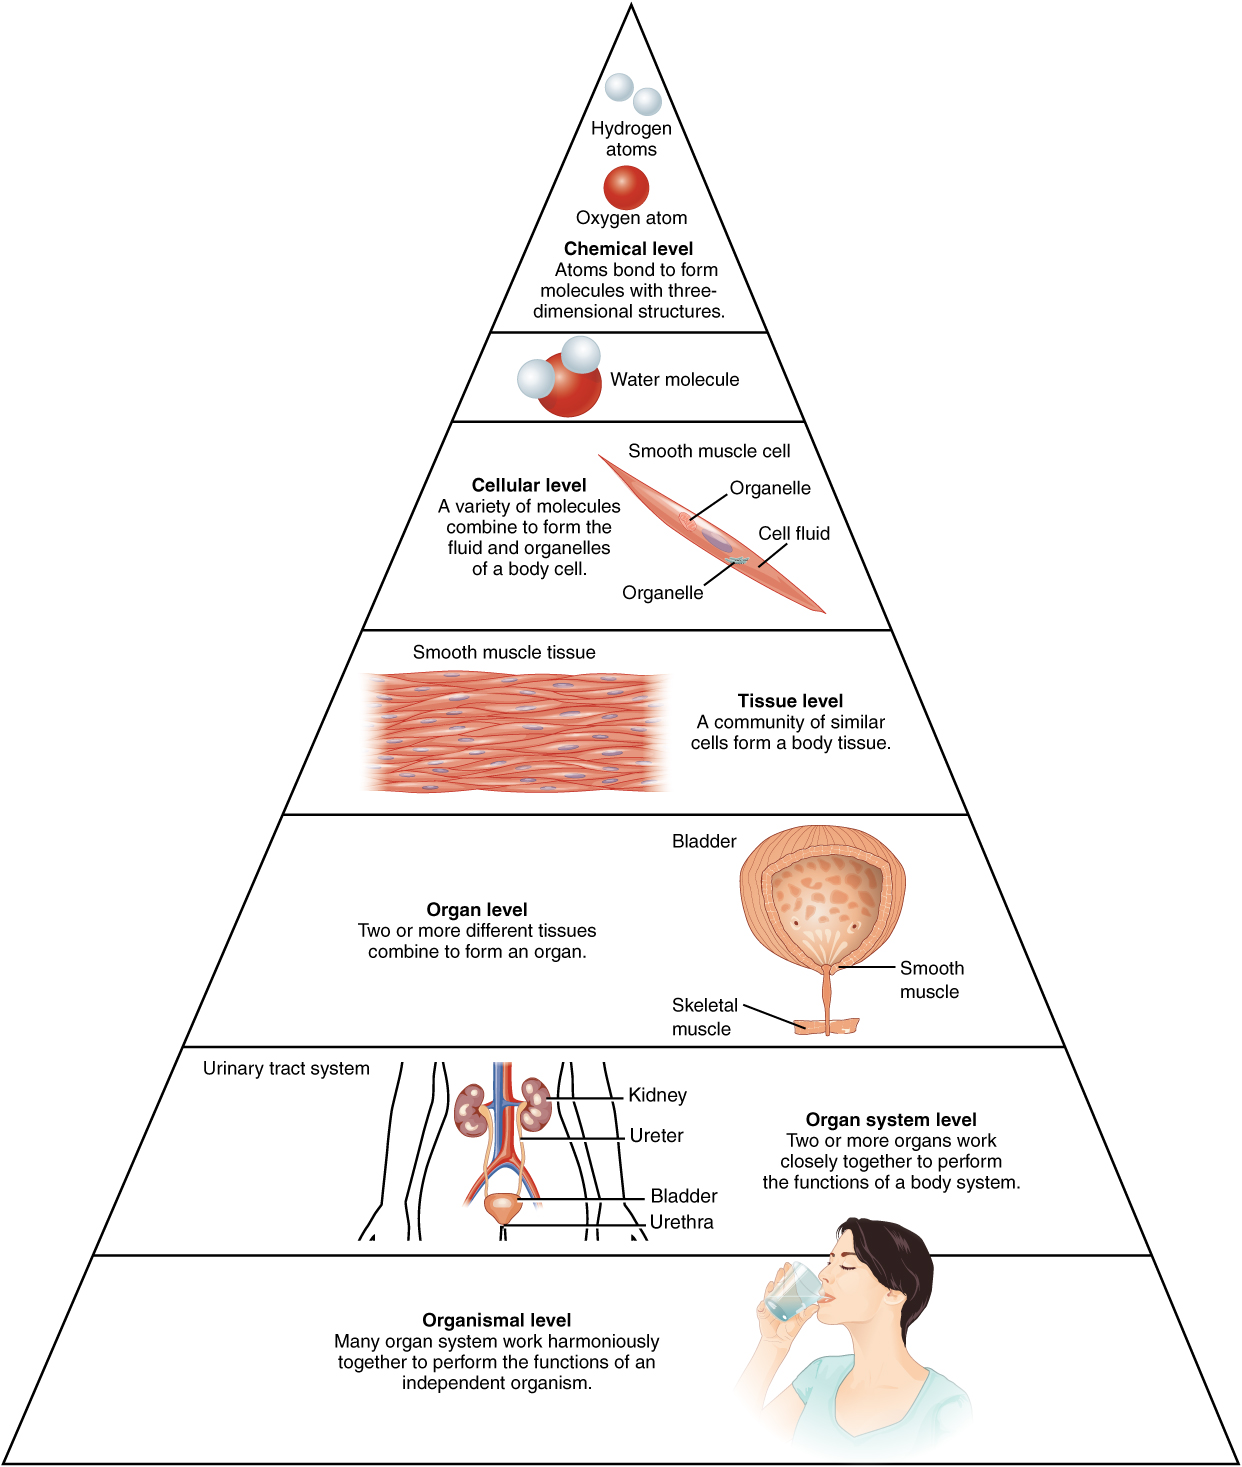 Levels of structural organization of the human body. Image description available.